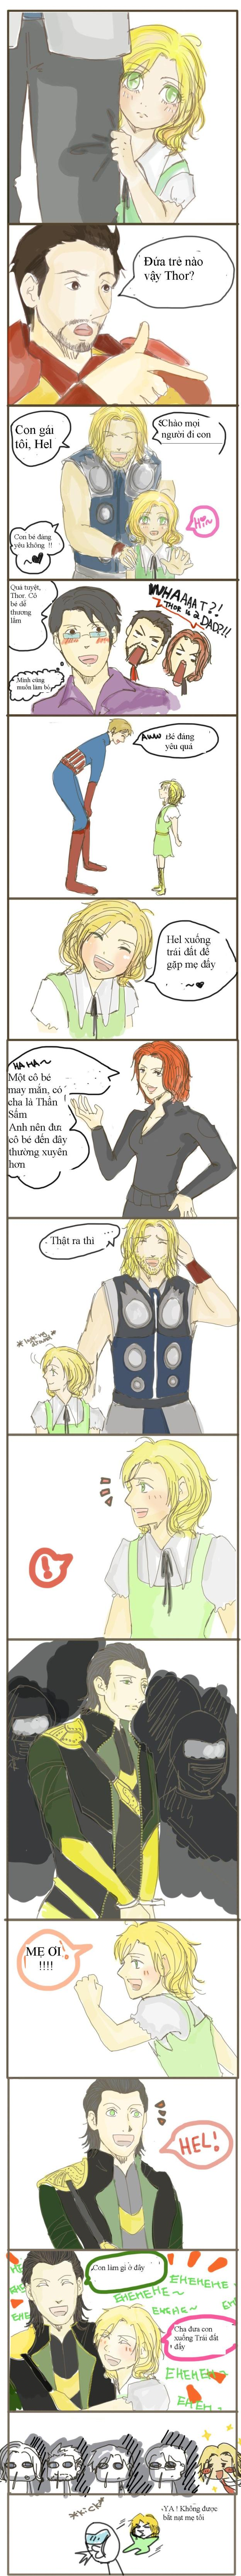 if_thor_n_loki_already_have____in_the_avengers____by_youyanwuzhu-d5clmx9